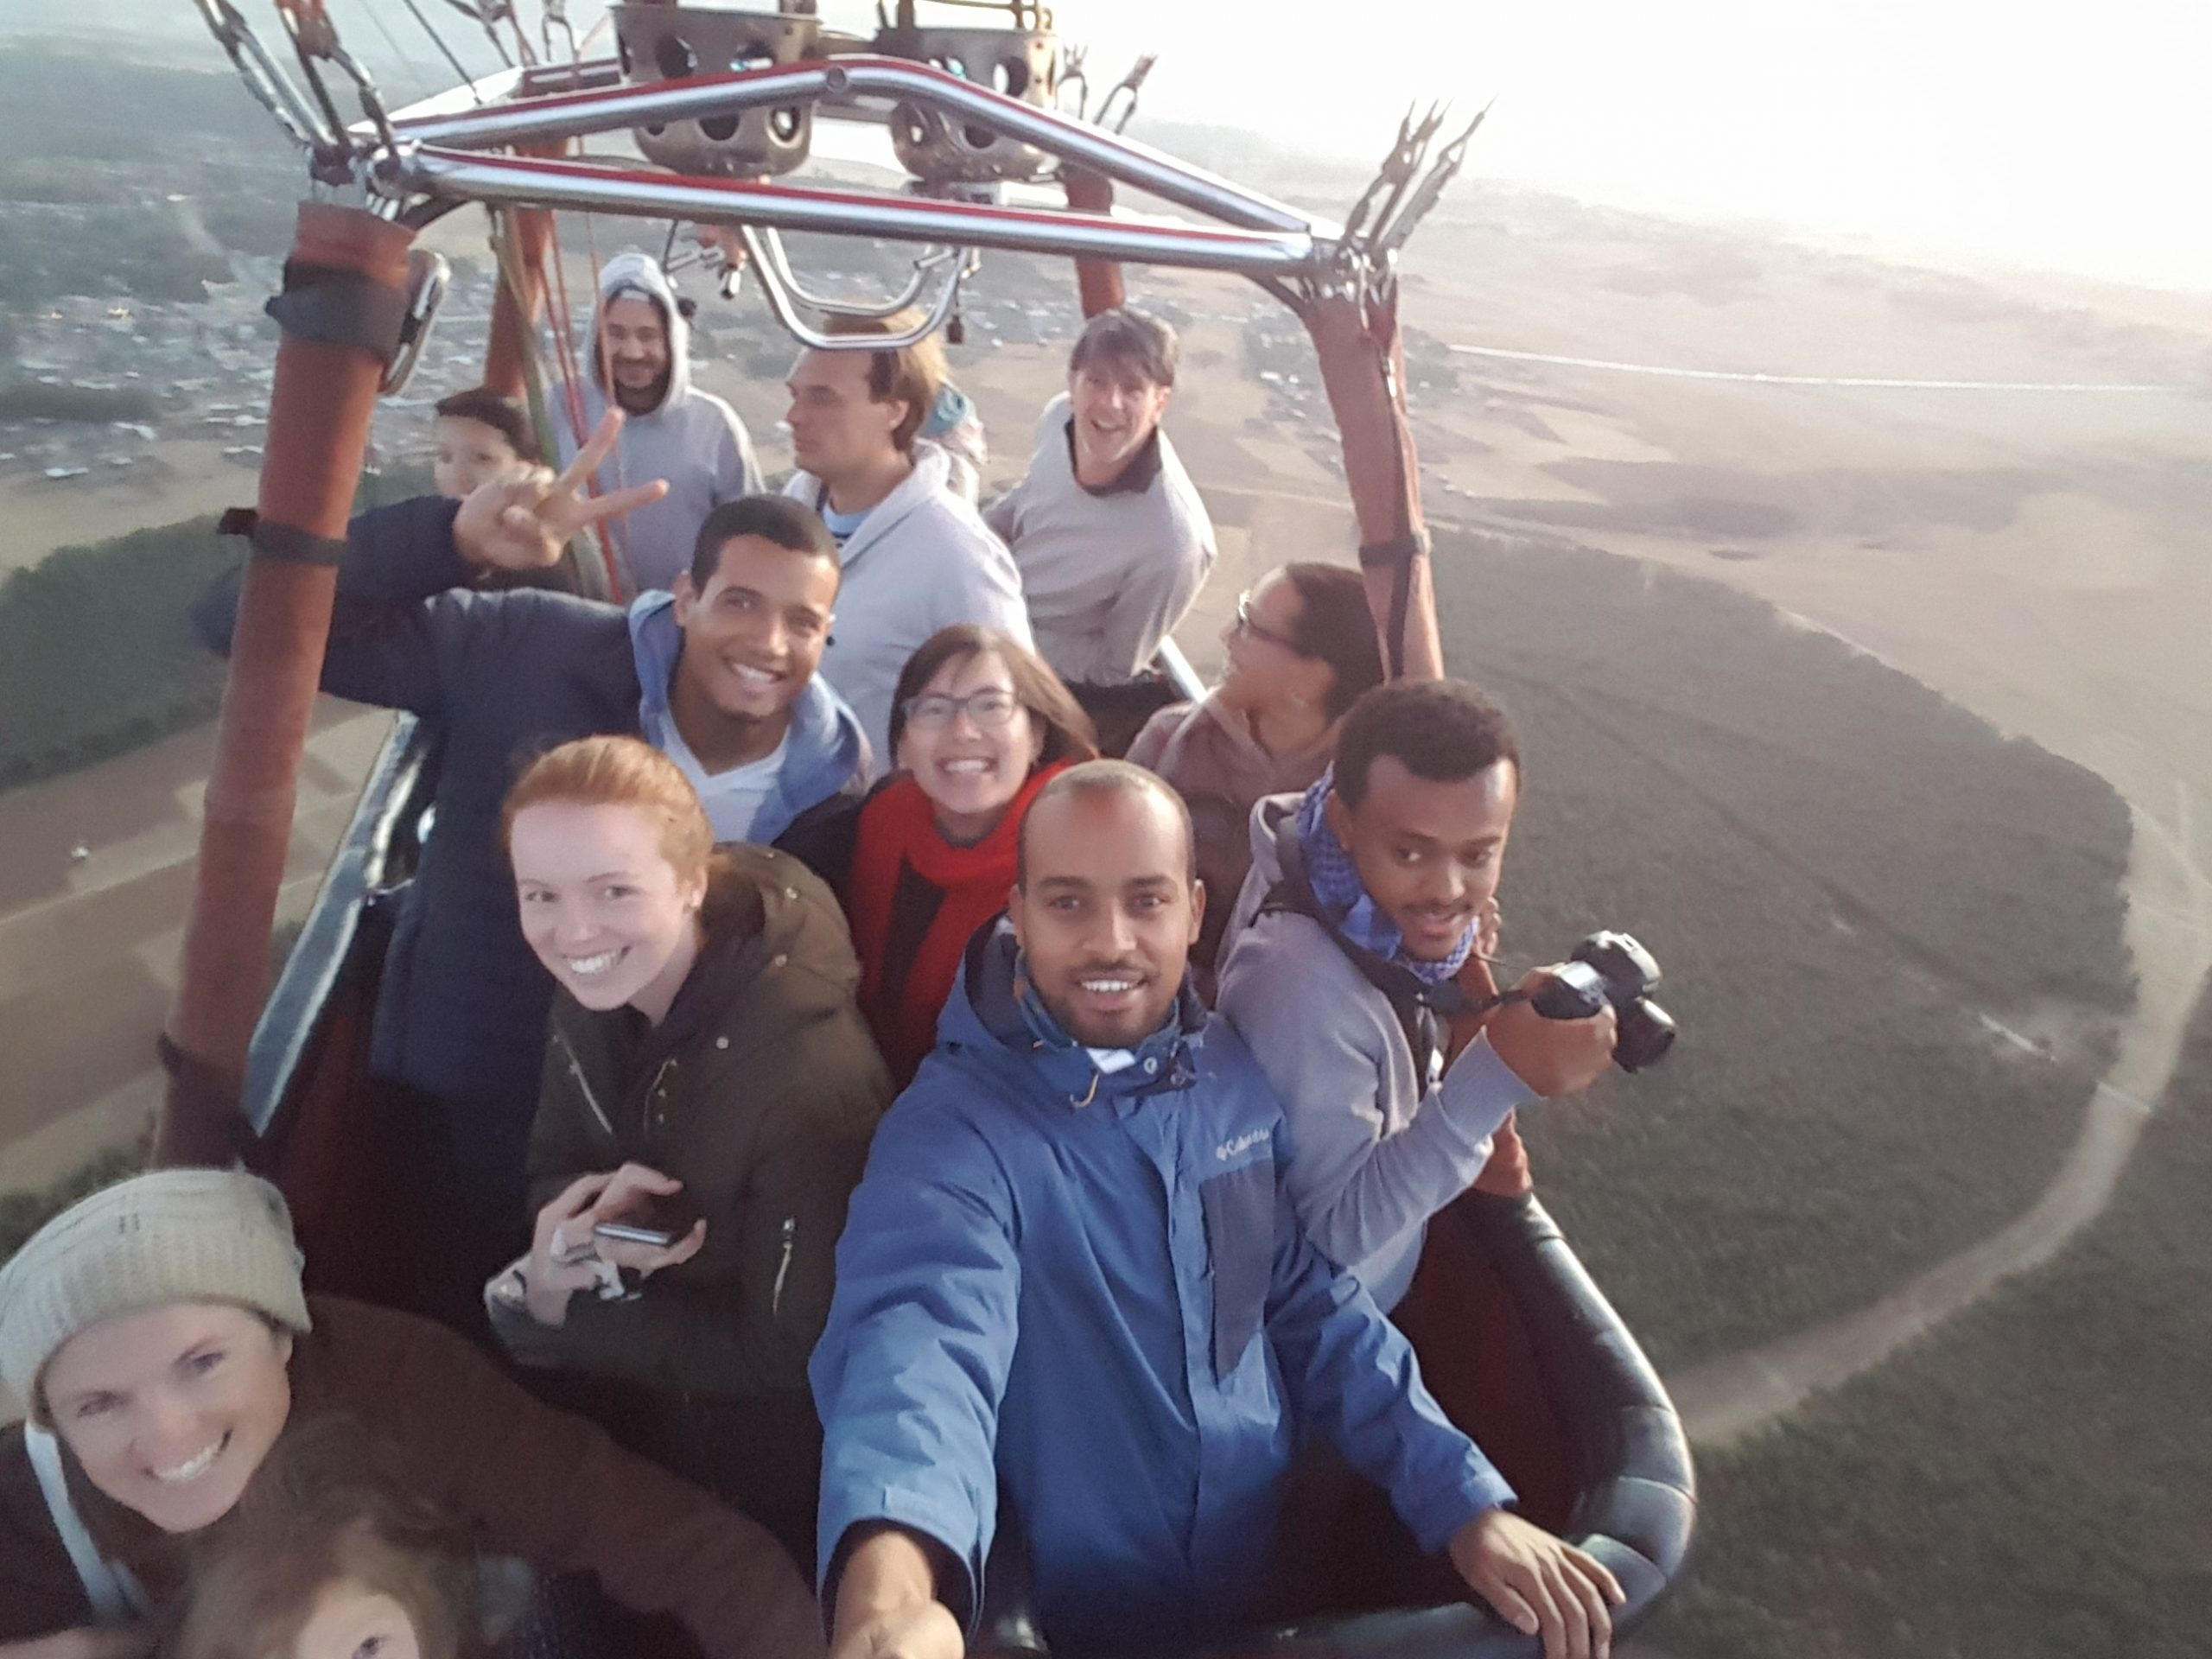 Sunrise balloon flight Addis Ababa Sunday 25 April 2021